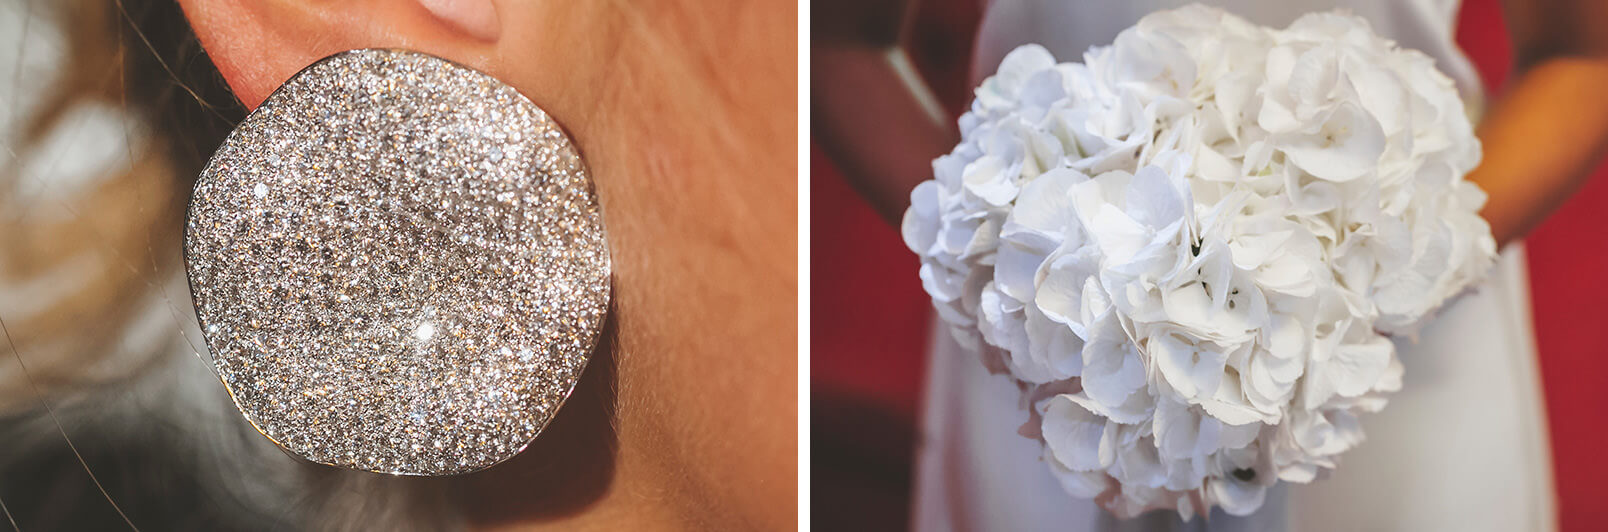 Details from the bride: earrings (high jewelry form Sabbadini, Milano) and the white bouquet (hortensia flowers).